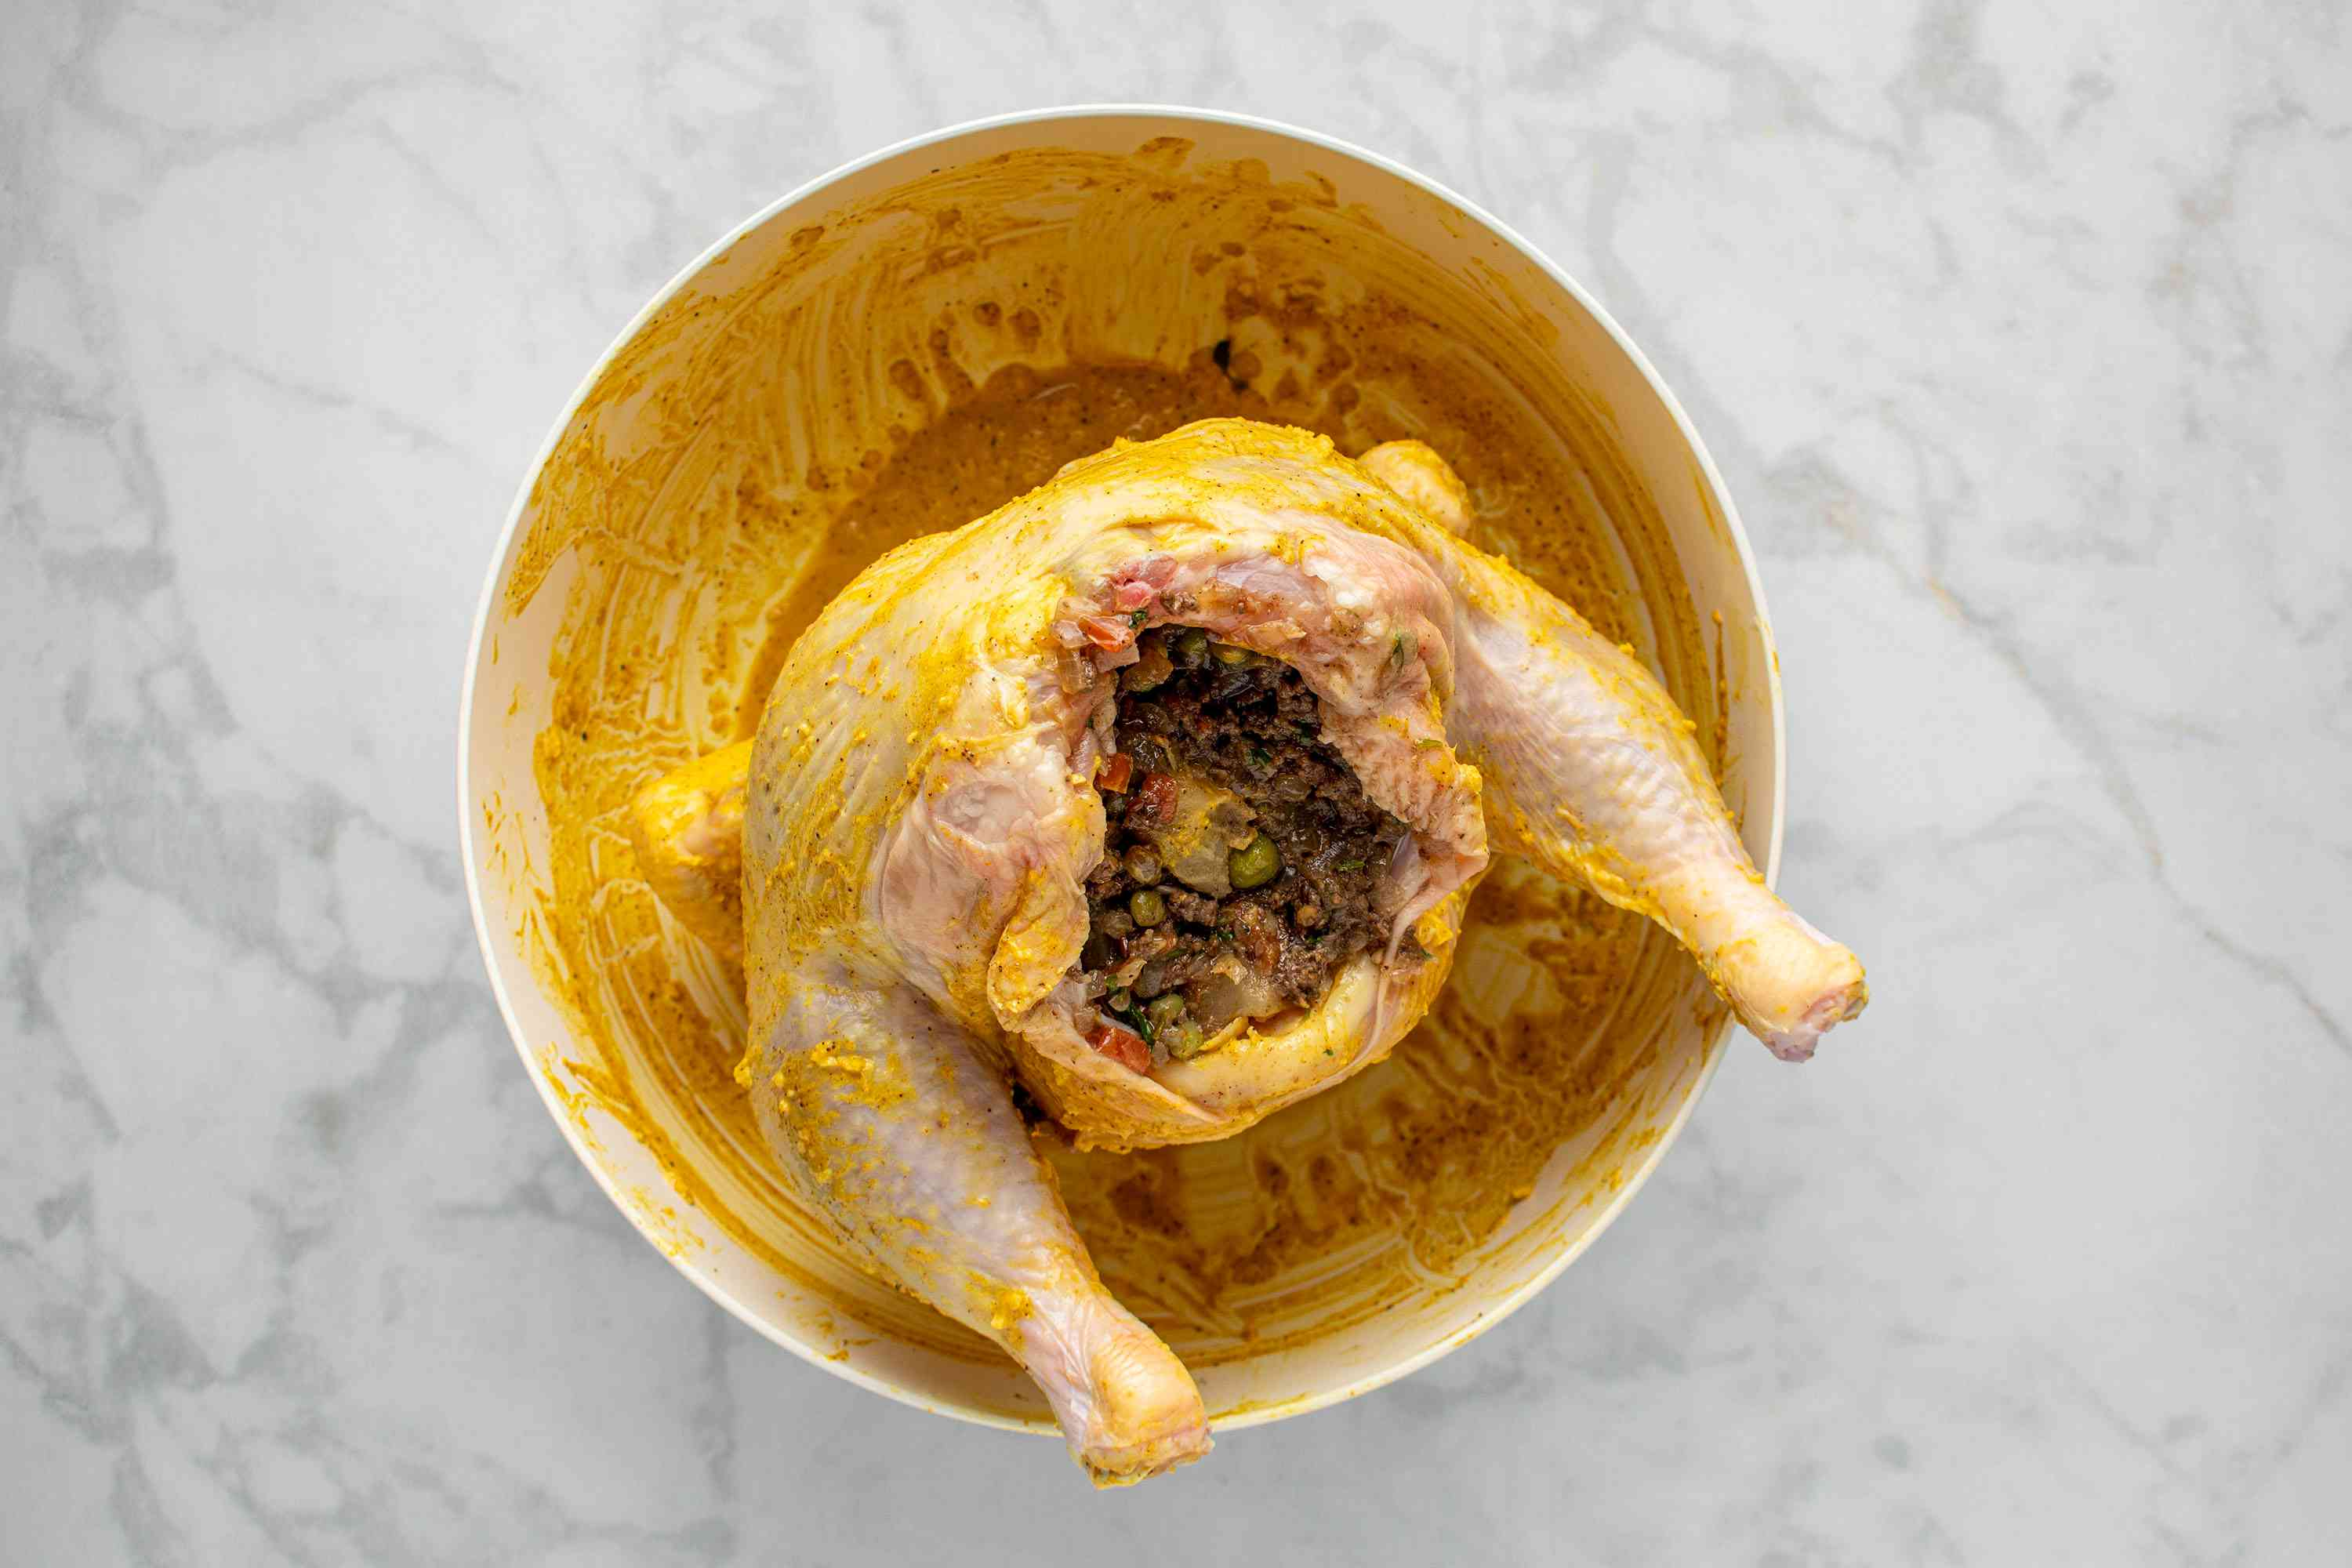 chicken filled with the meat and vegetable filling in a bowl